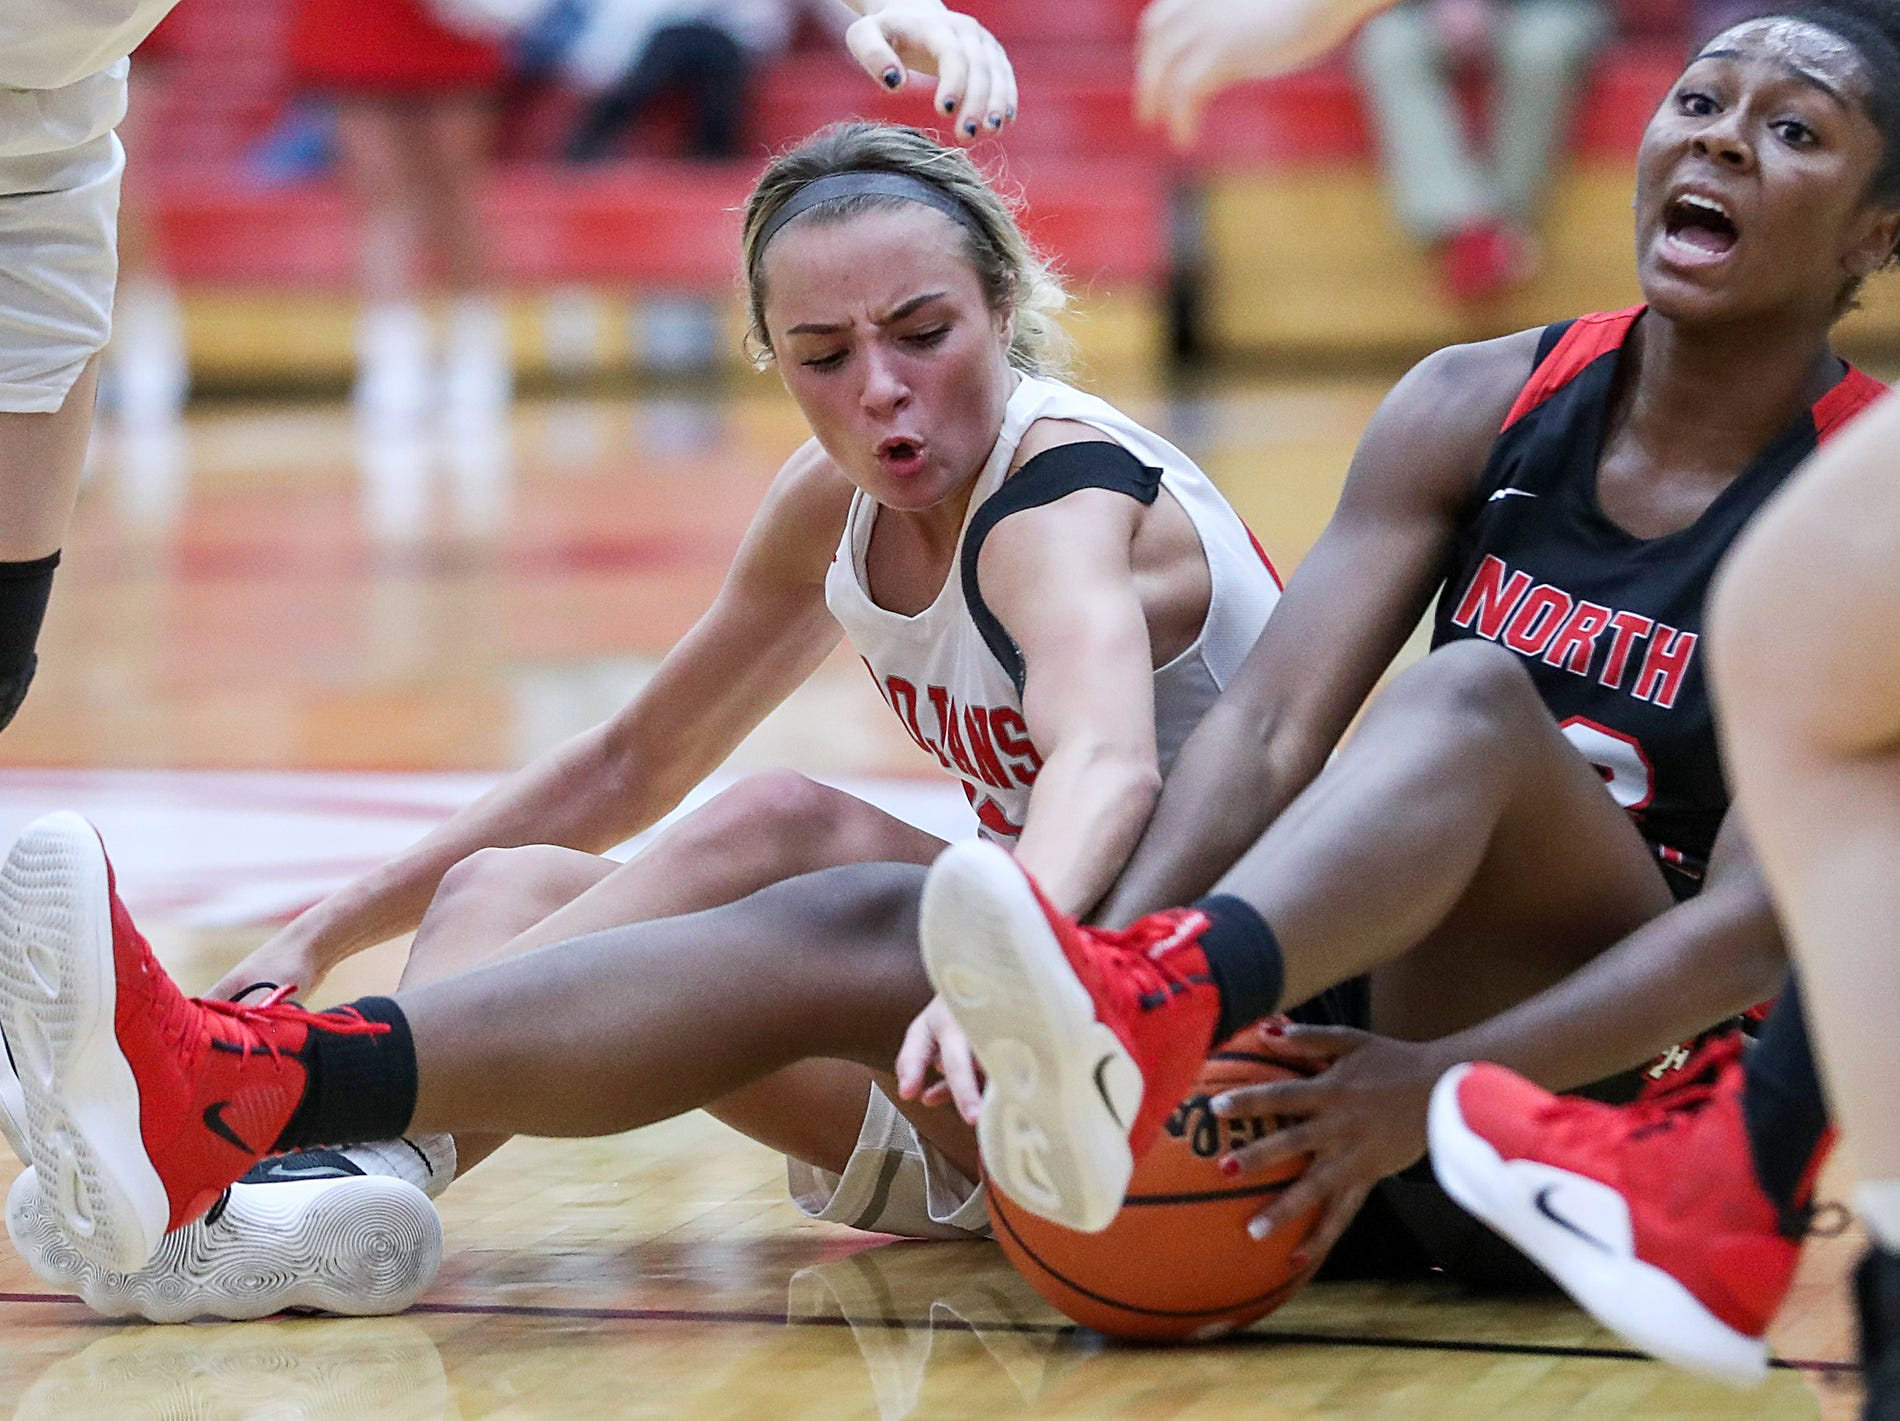 Center Grove Trojans guard Emma Utterback (23) and North Central Panthers guard Jasmine McWilliams (23) fight for the ball in the second half of the game at Center Grove High School in Greenwood, Ind., Thursday, Jan. 10, 2019. Center Grove defeated North Central, 51-44.